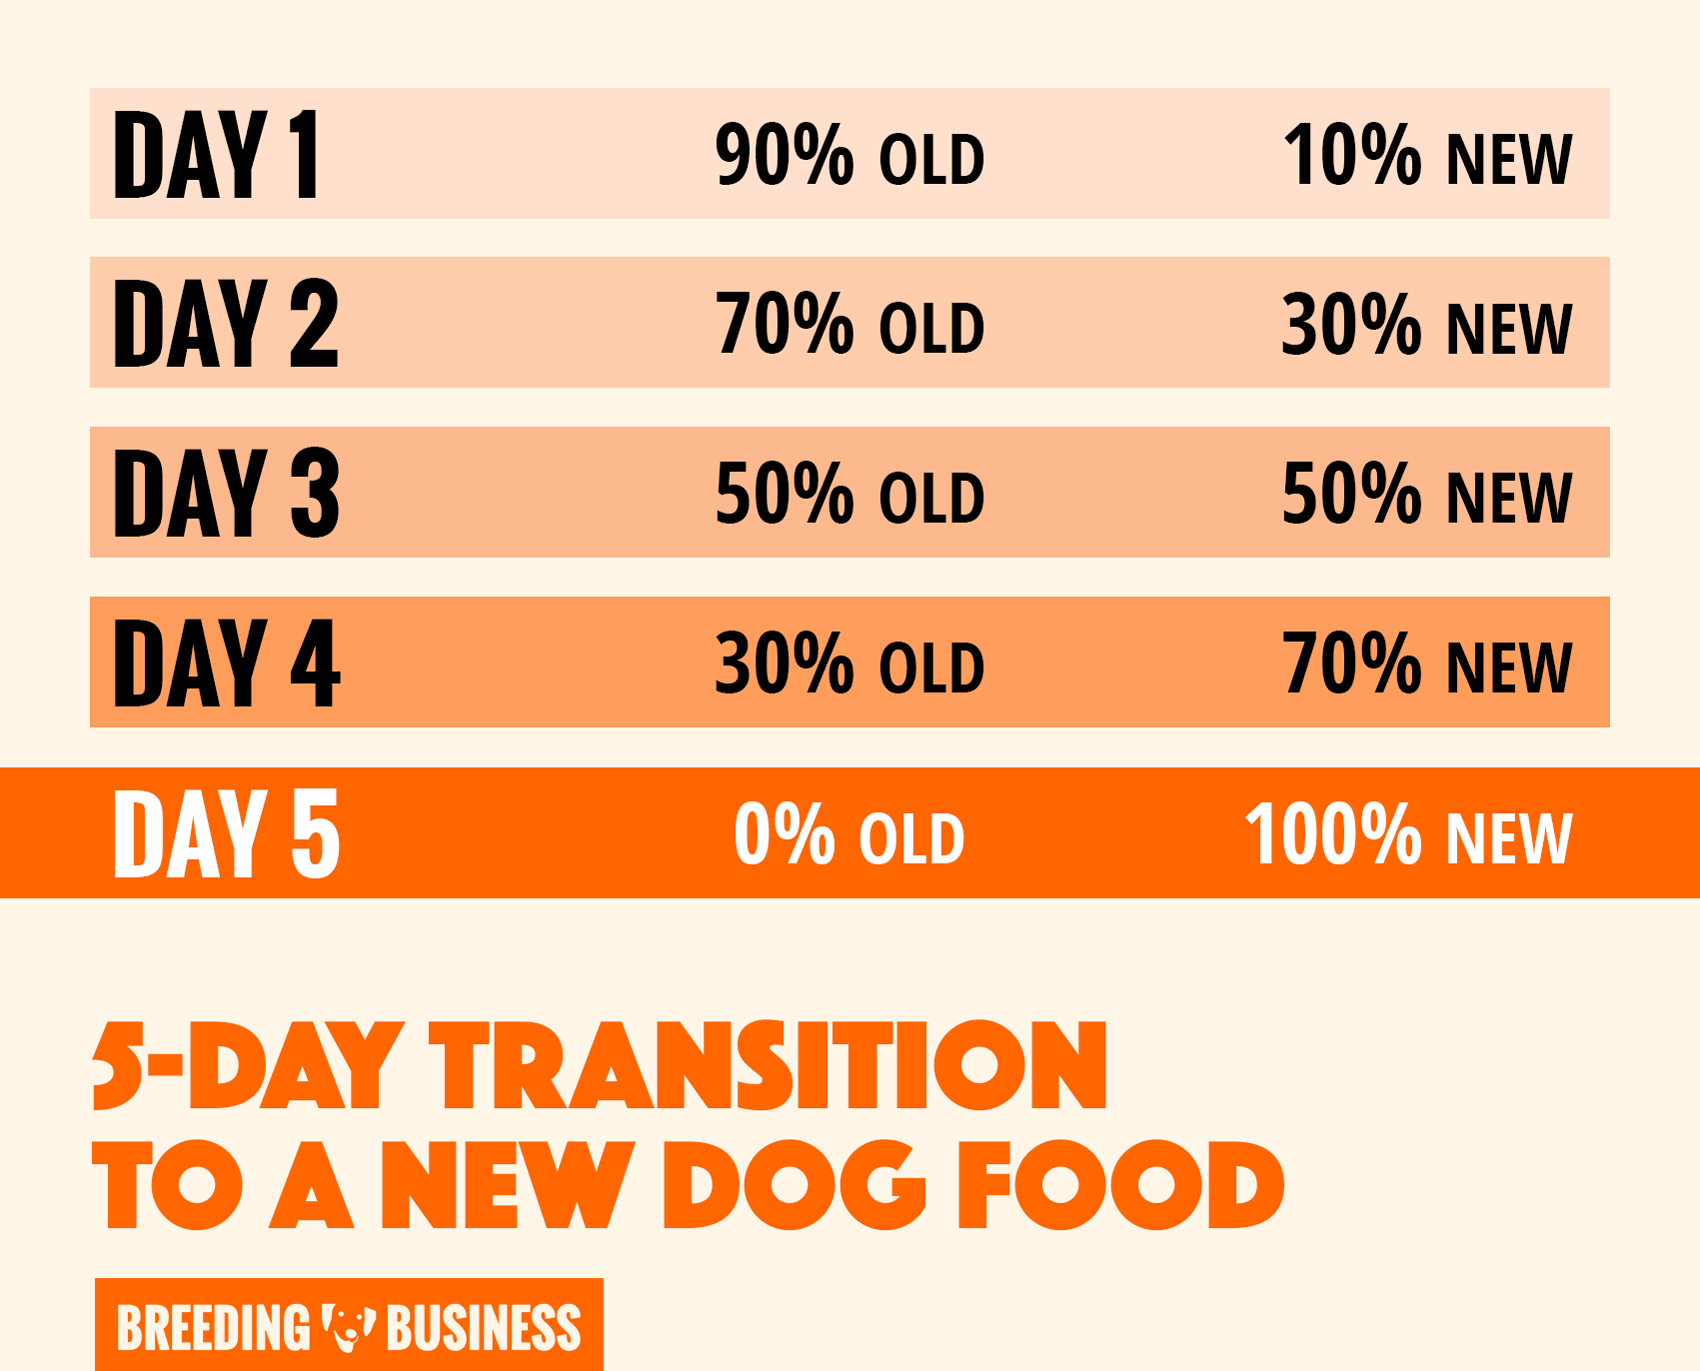 Infographic: introduce gradually the new food to your dog and monitor his health during this transition period. In rare cases, you may have to revert back to the original old food.